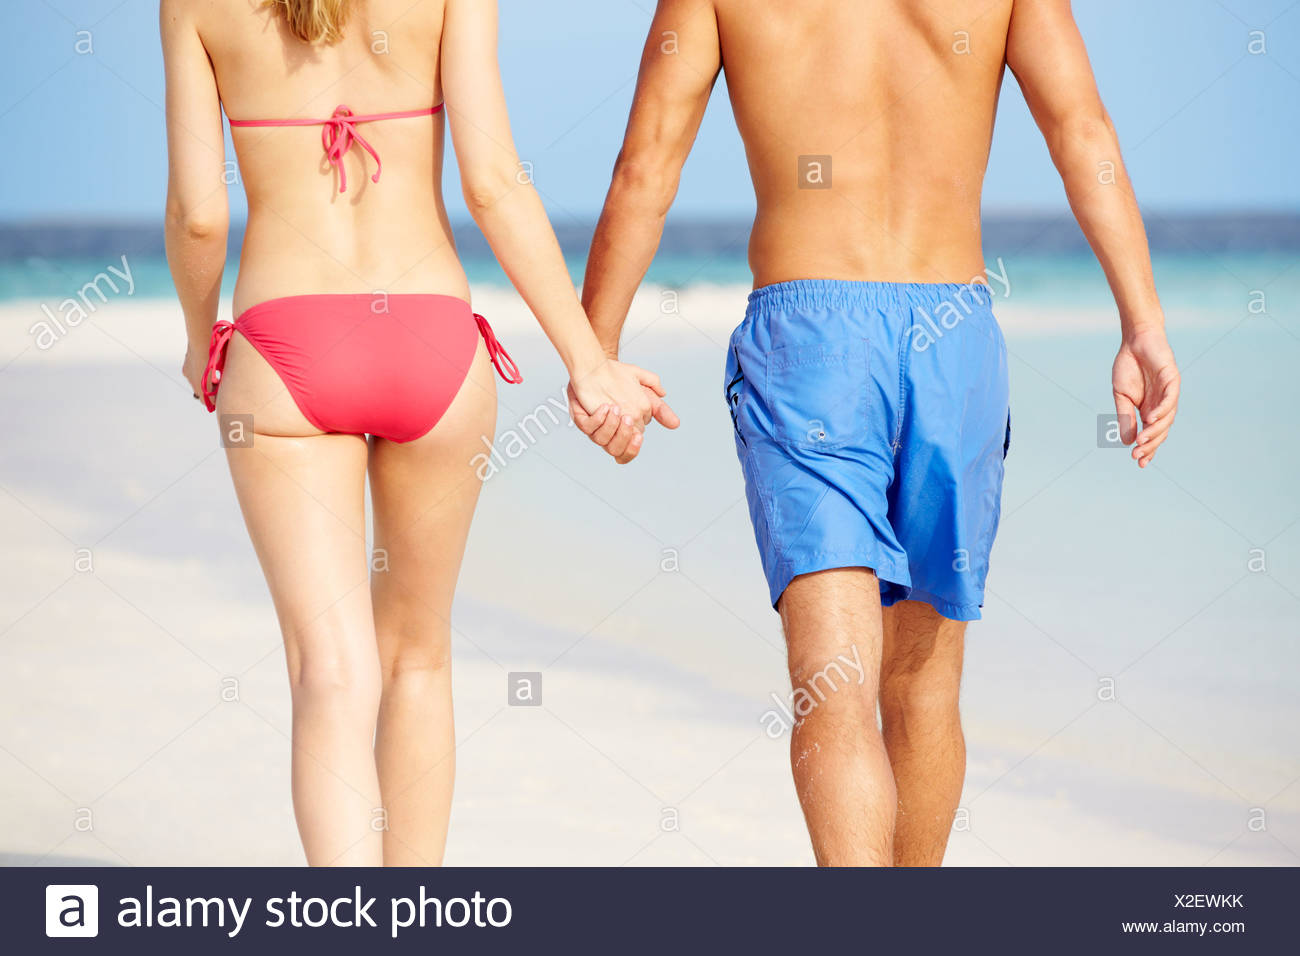 Close Up Of Romantic Couple Walking On Tropical Beach - Stock Image